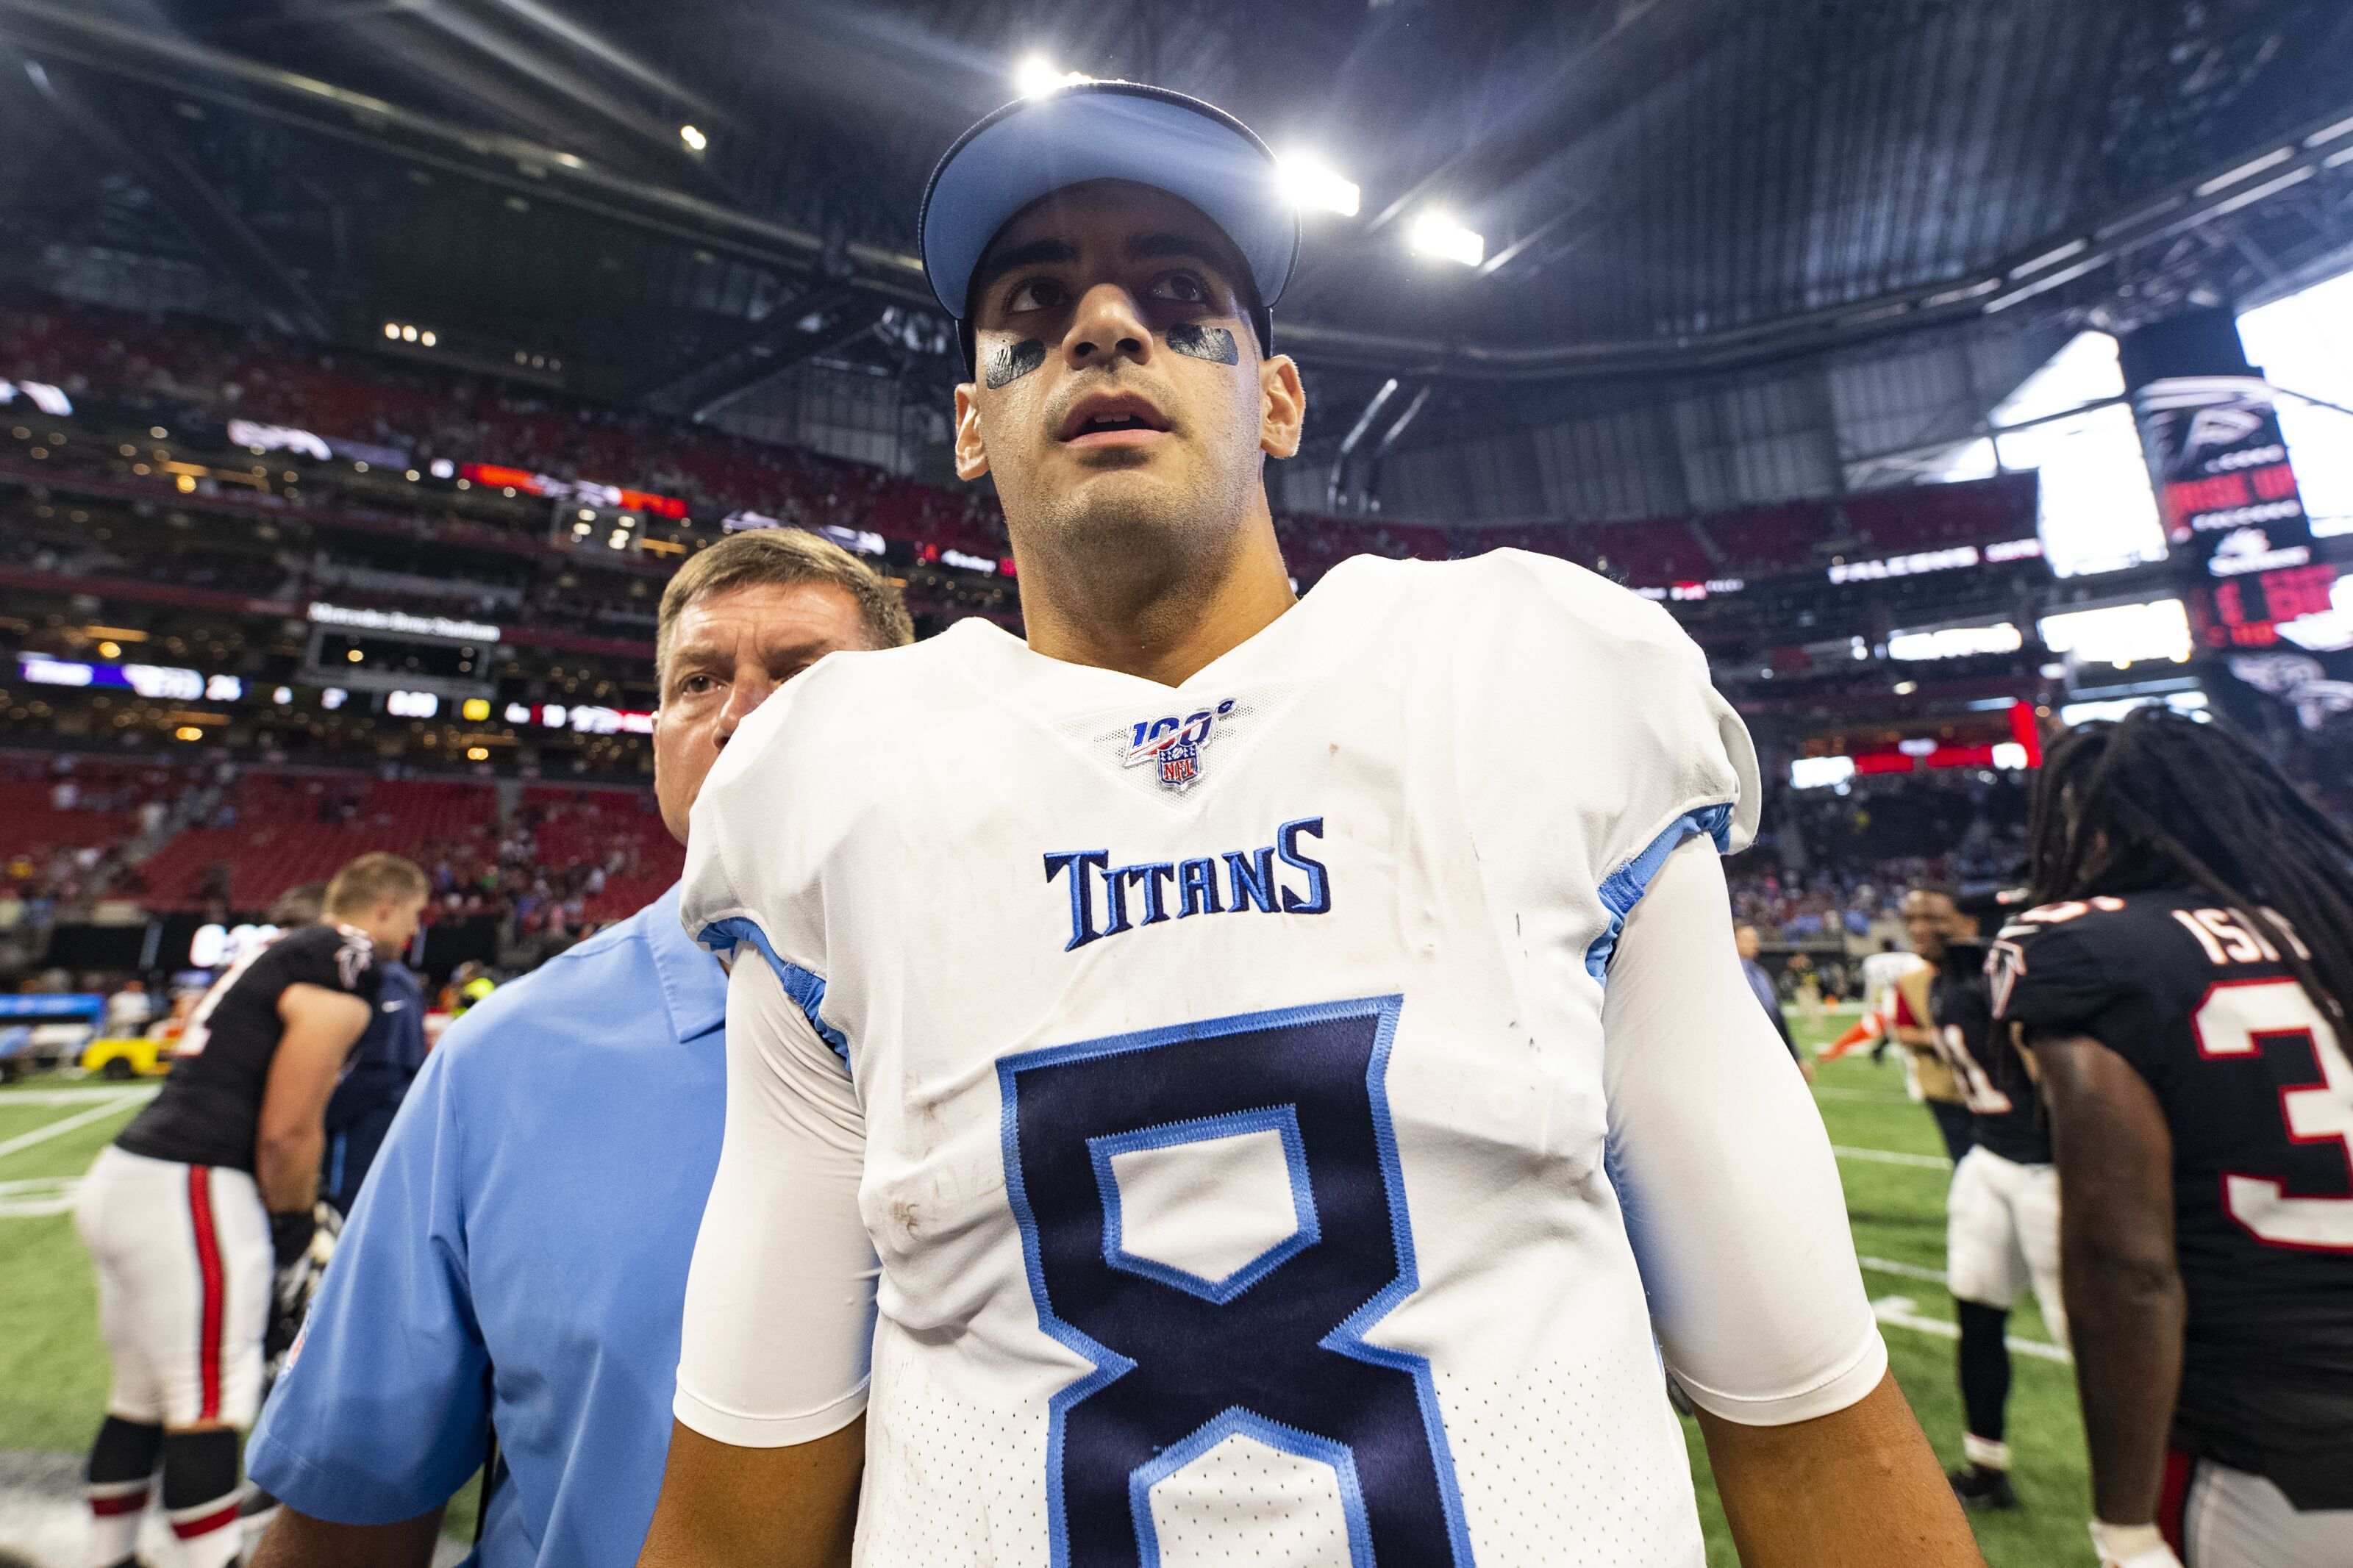 What's next for Tennessee Titans after end of Marcus Mariota era?